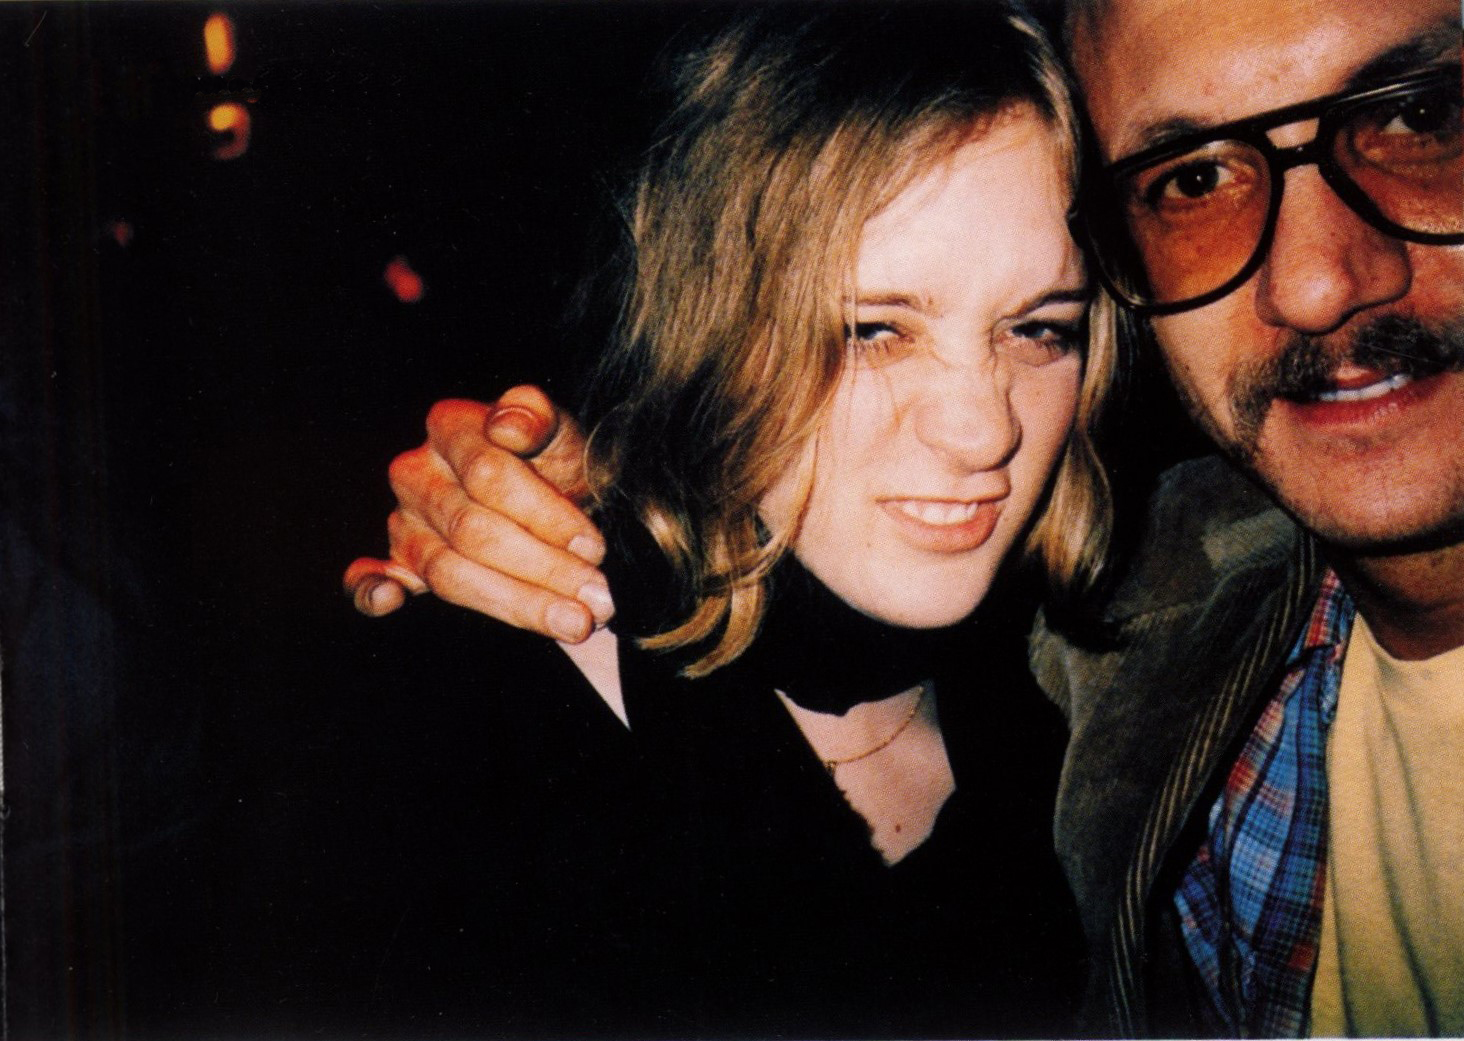 ohloe sevigny terry richardson photography terry richardson purple 7 spring 2001